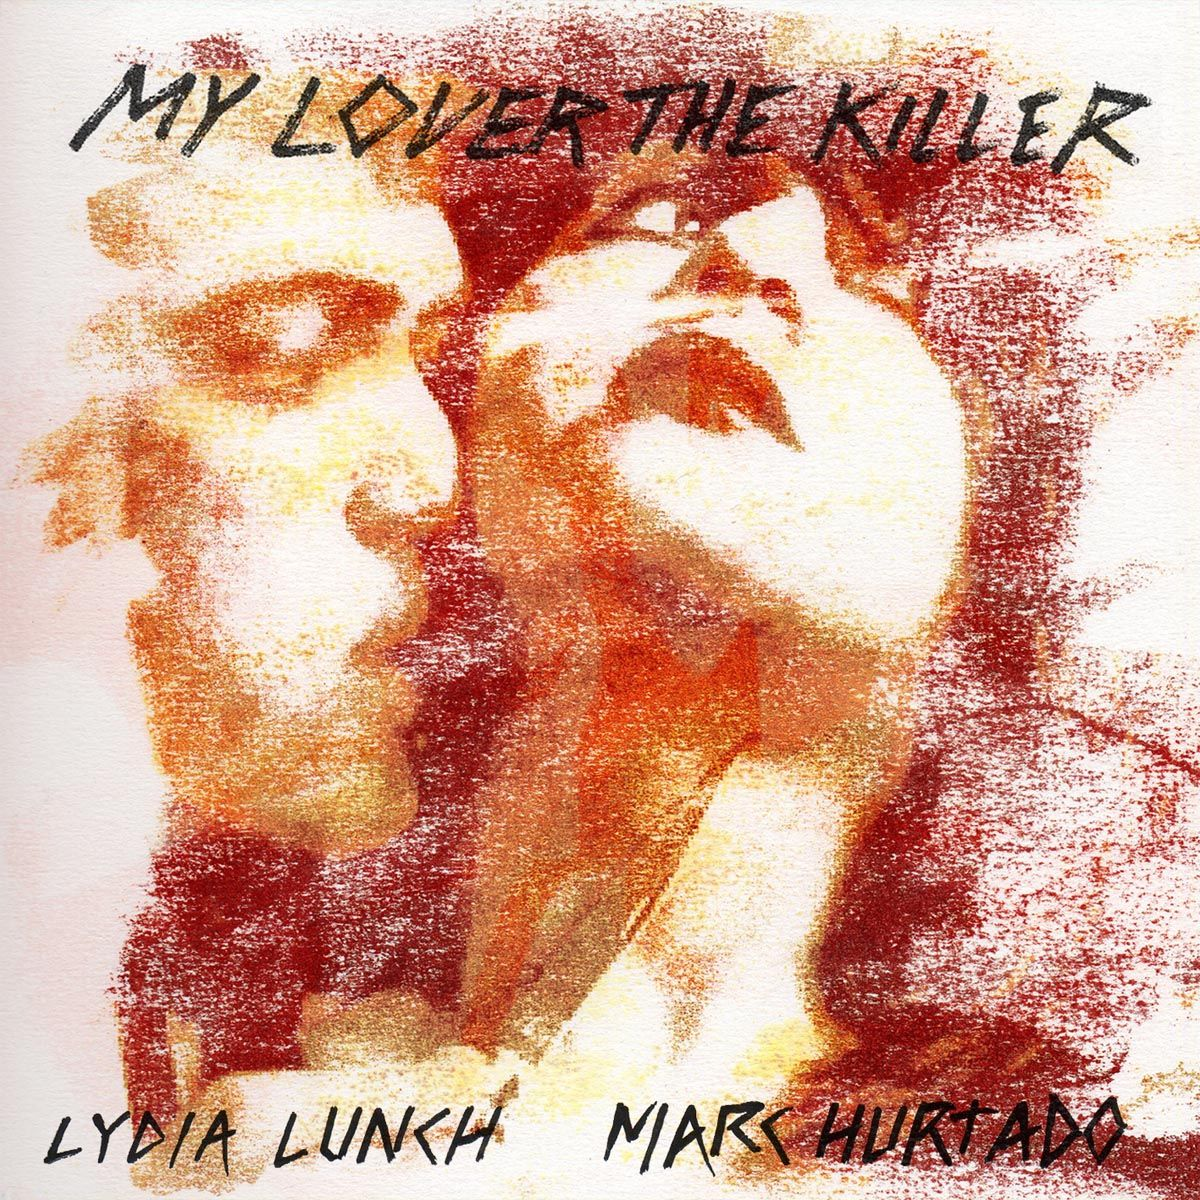 ultratop.be - Lydia Lunch / Marc Hurtado - My Lover The Killer